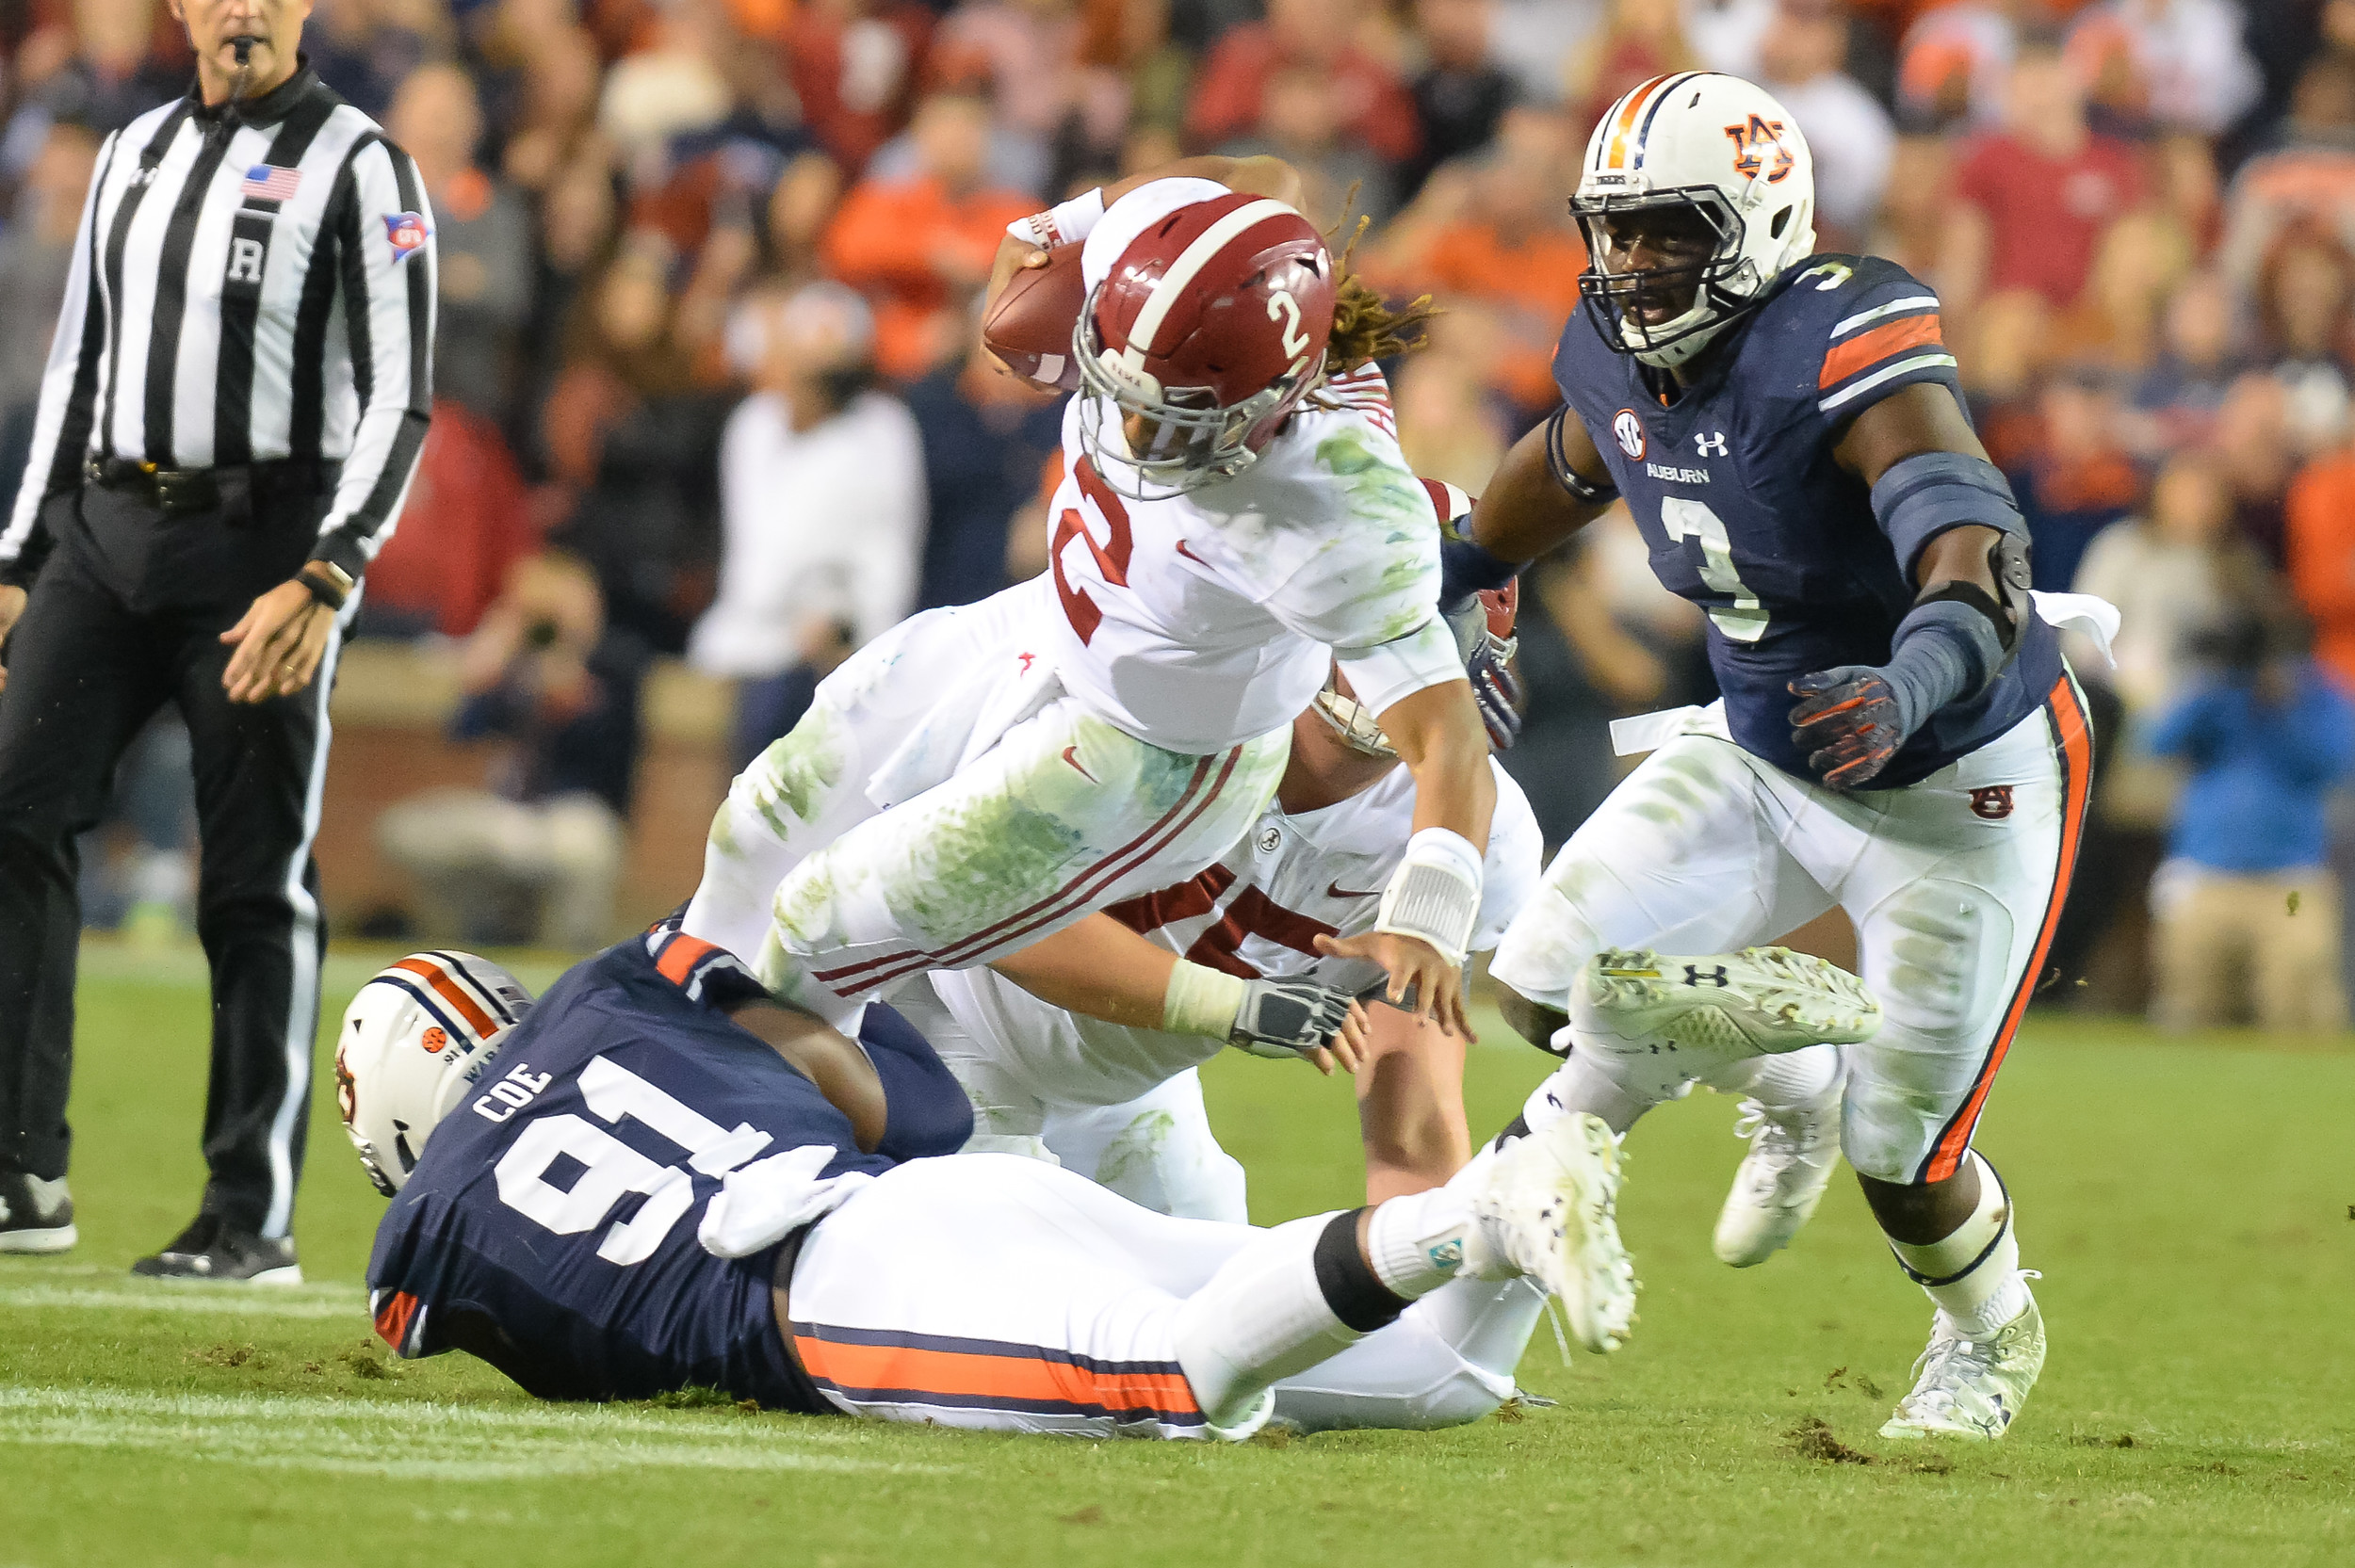 Alabama Crimson Tide quarterback Jalen Hurts (2) is sacked by Auburn Tigers defensive lineman Nick Coe (91) during the second half of Saturday's game, at Jordan-Hare Stadium.